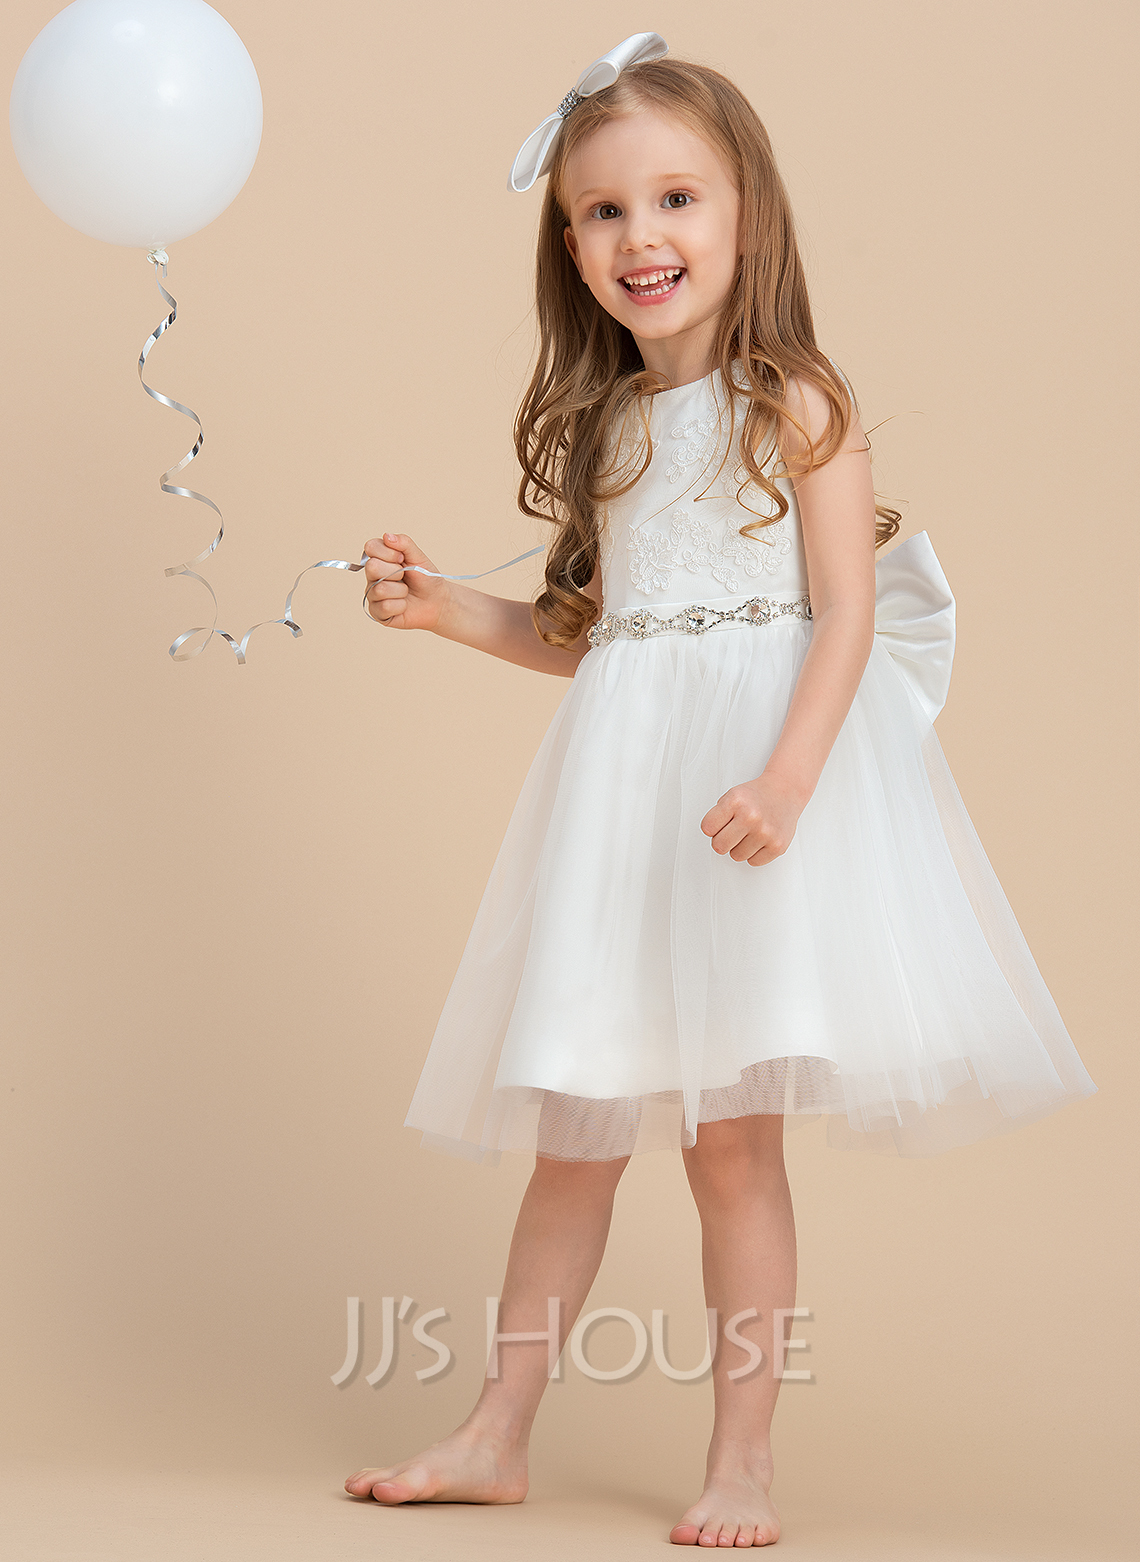 A-Line/Princess Knee-length Flower Girl Dress - Satin/Tulle/Lace Sleeveless Scoop Neck With Bow(s)/Rhinestone/V Back